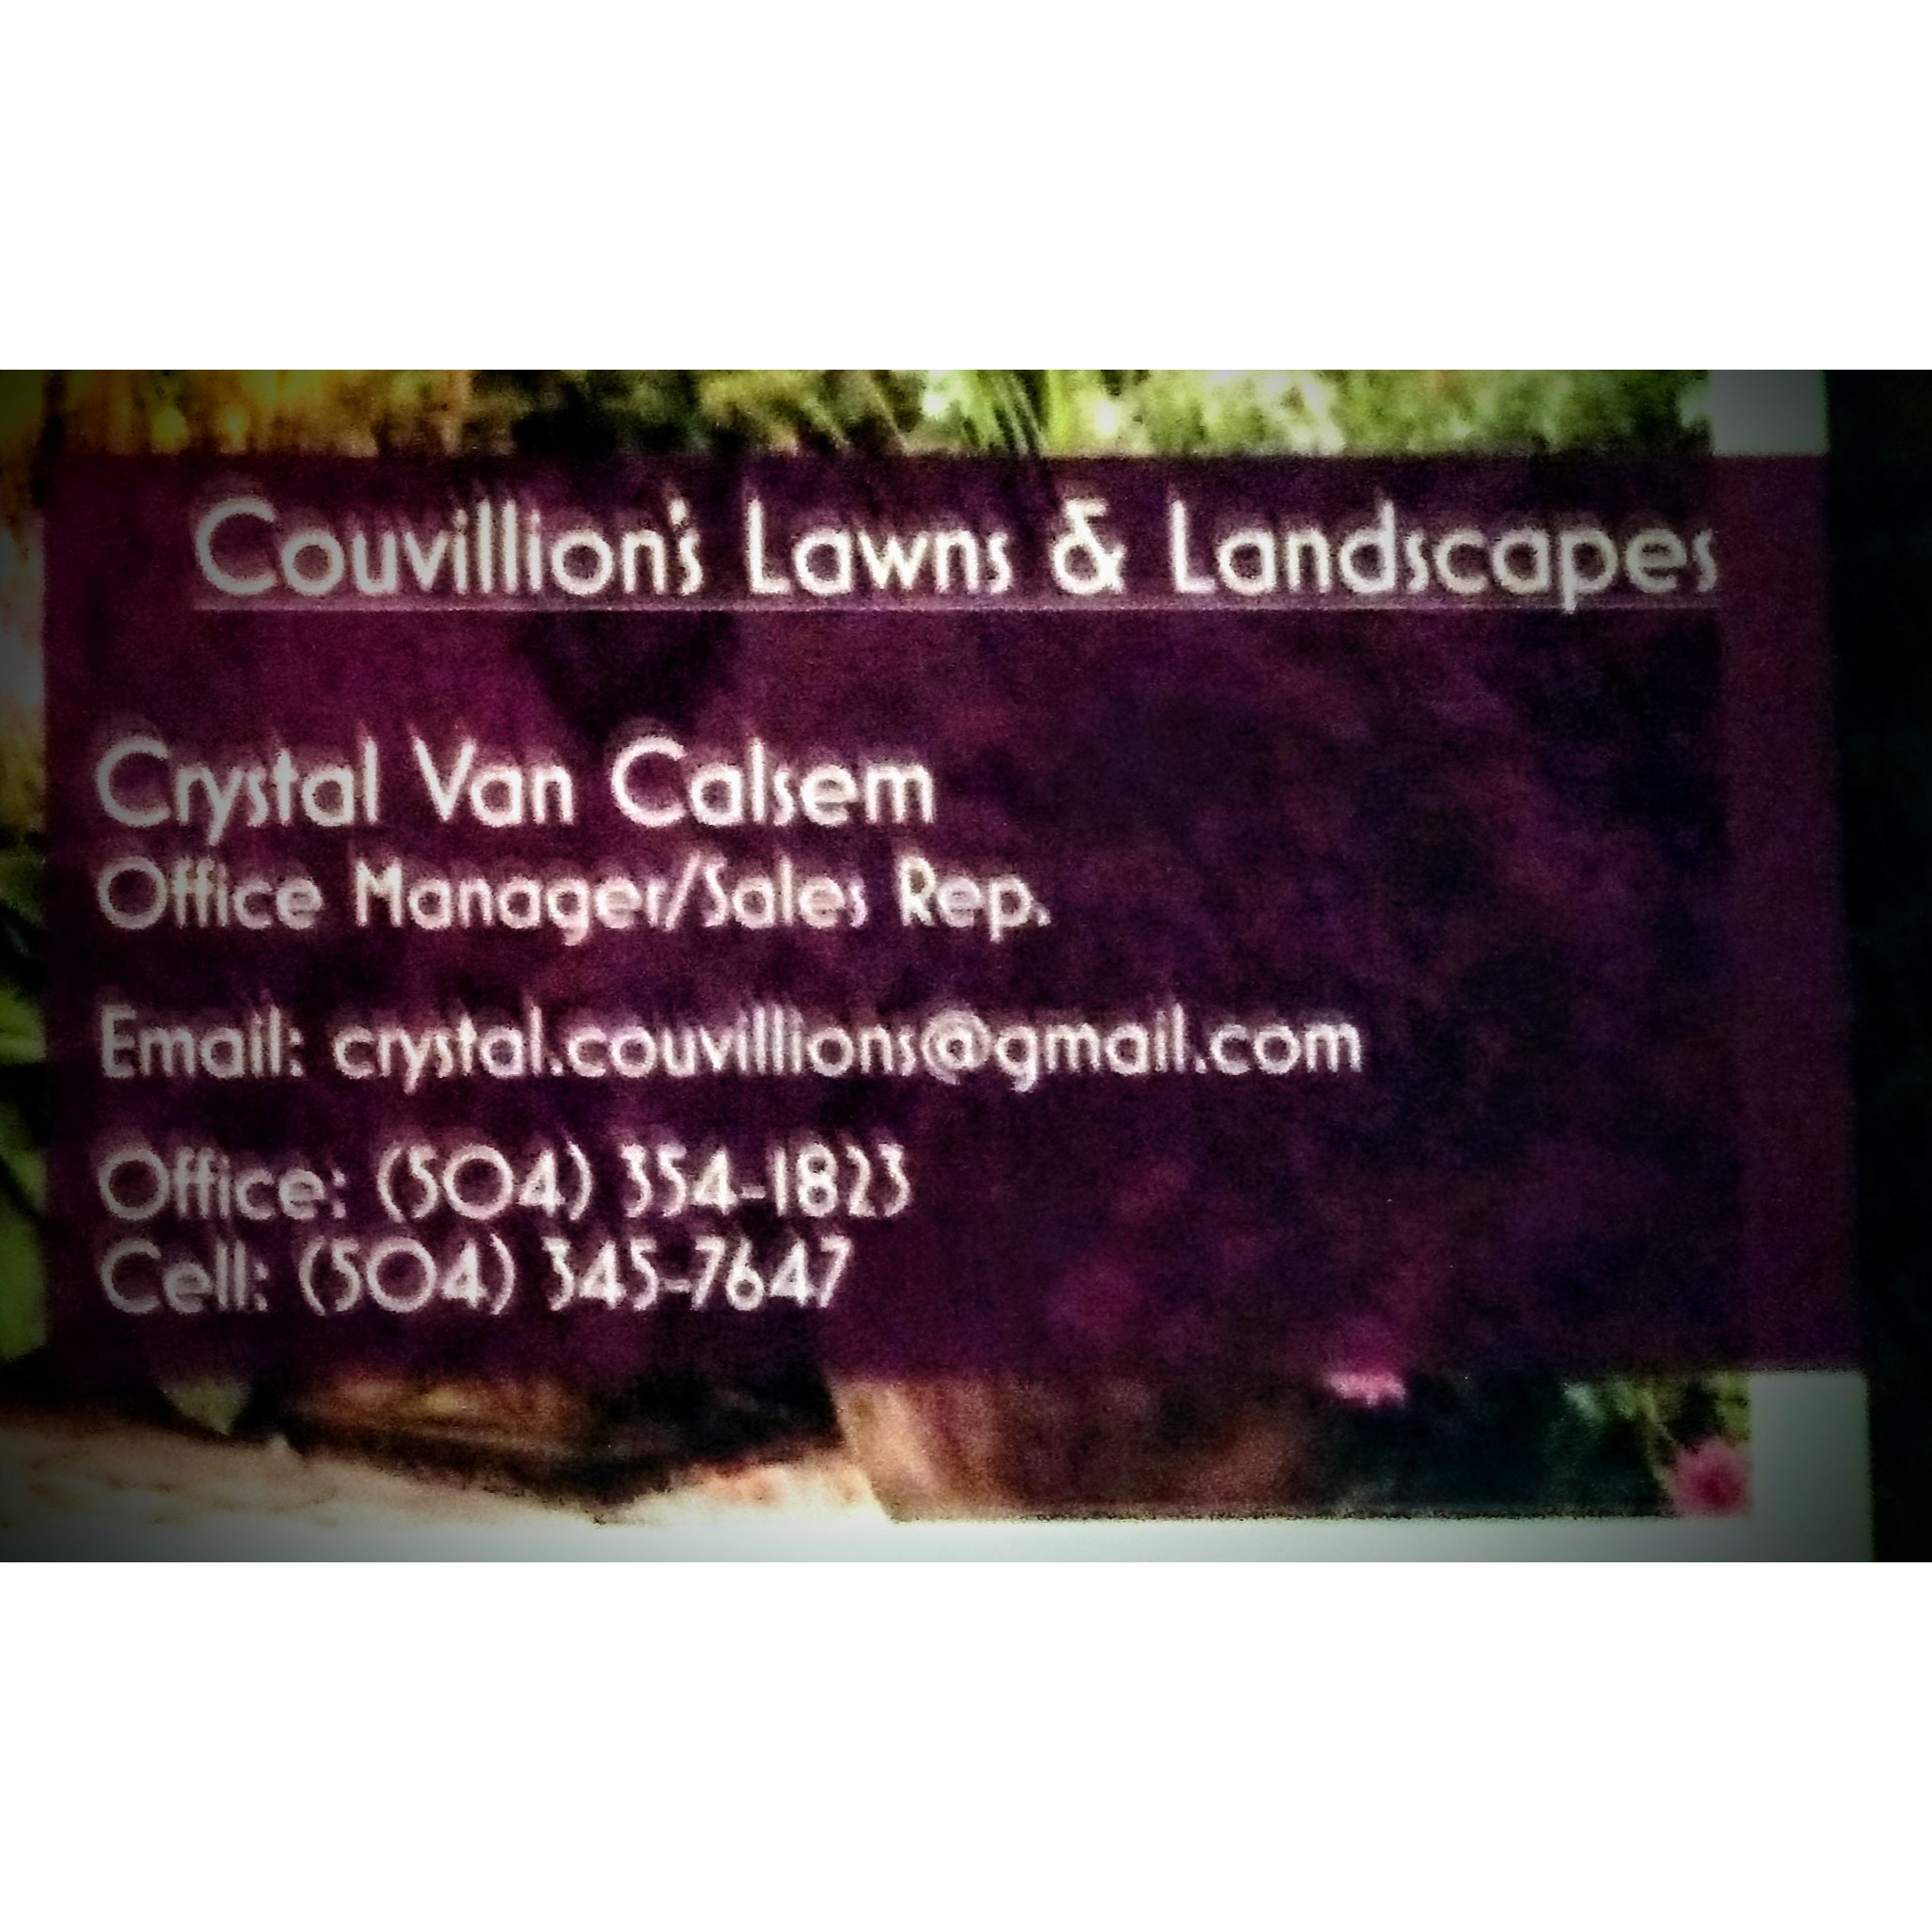 Couvillion's Lawn and Landscaping